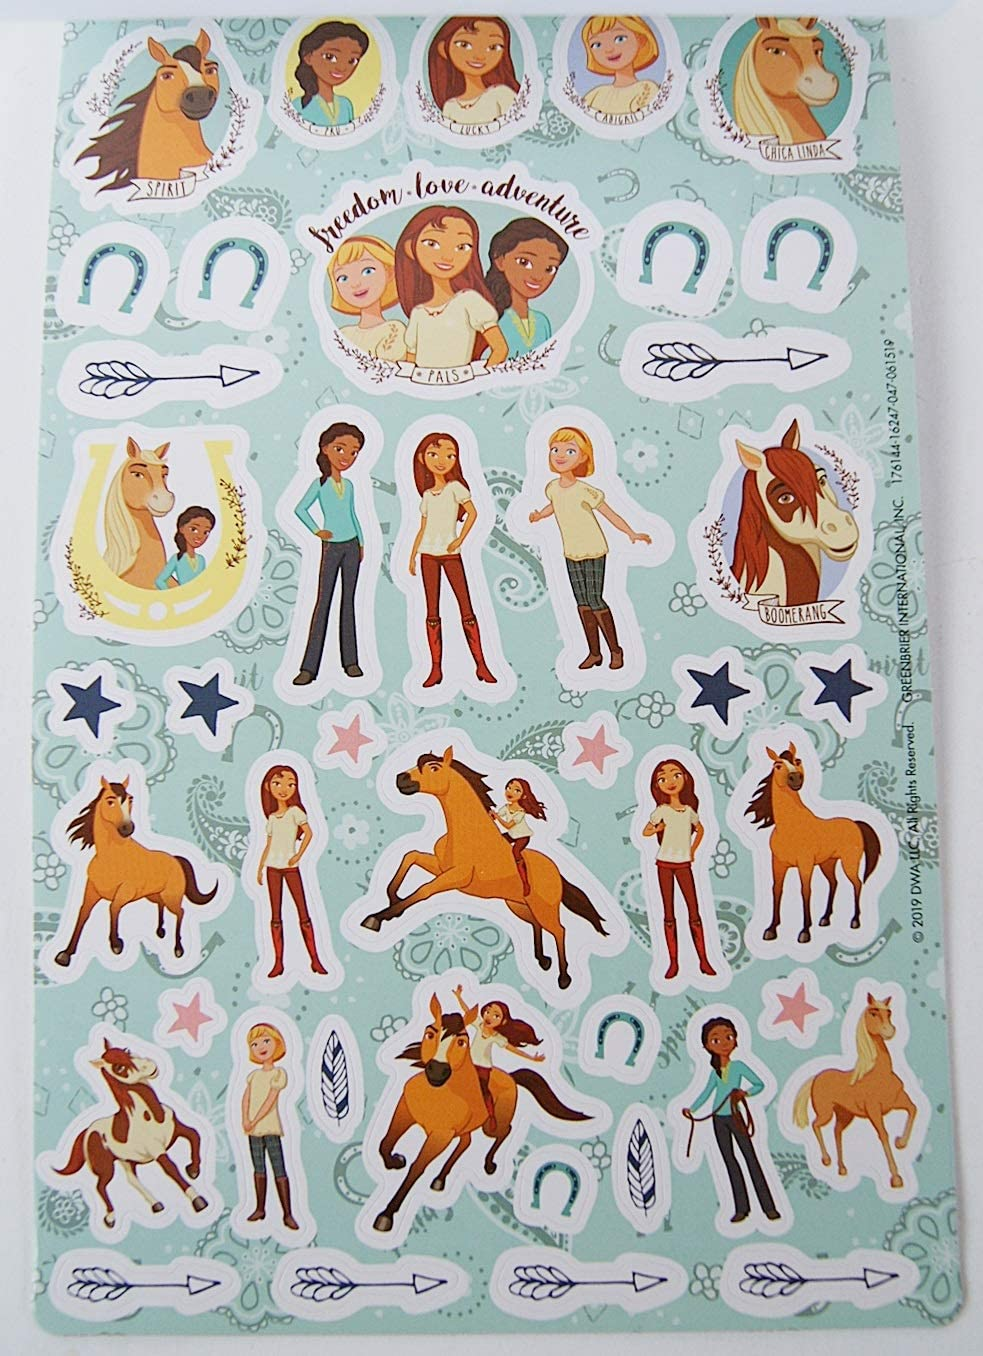 Spirit Riding Free Sticker Collection Pad Includes Over 150 Stickers